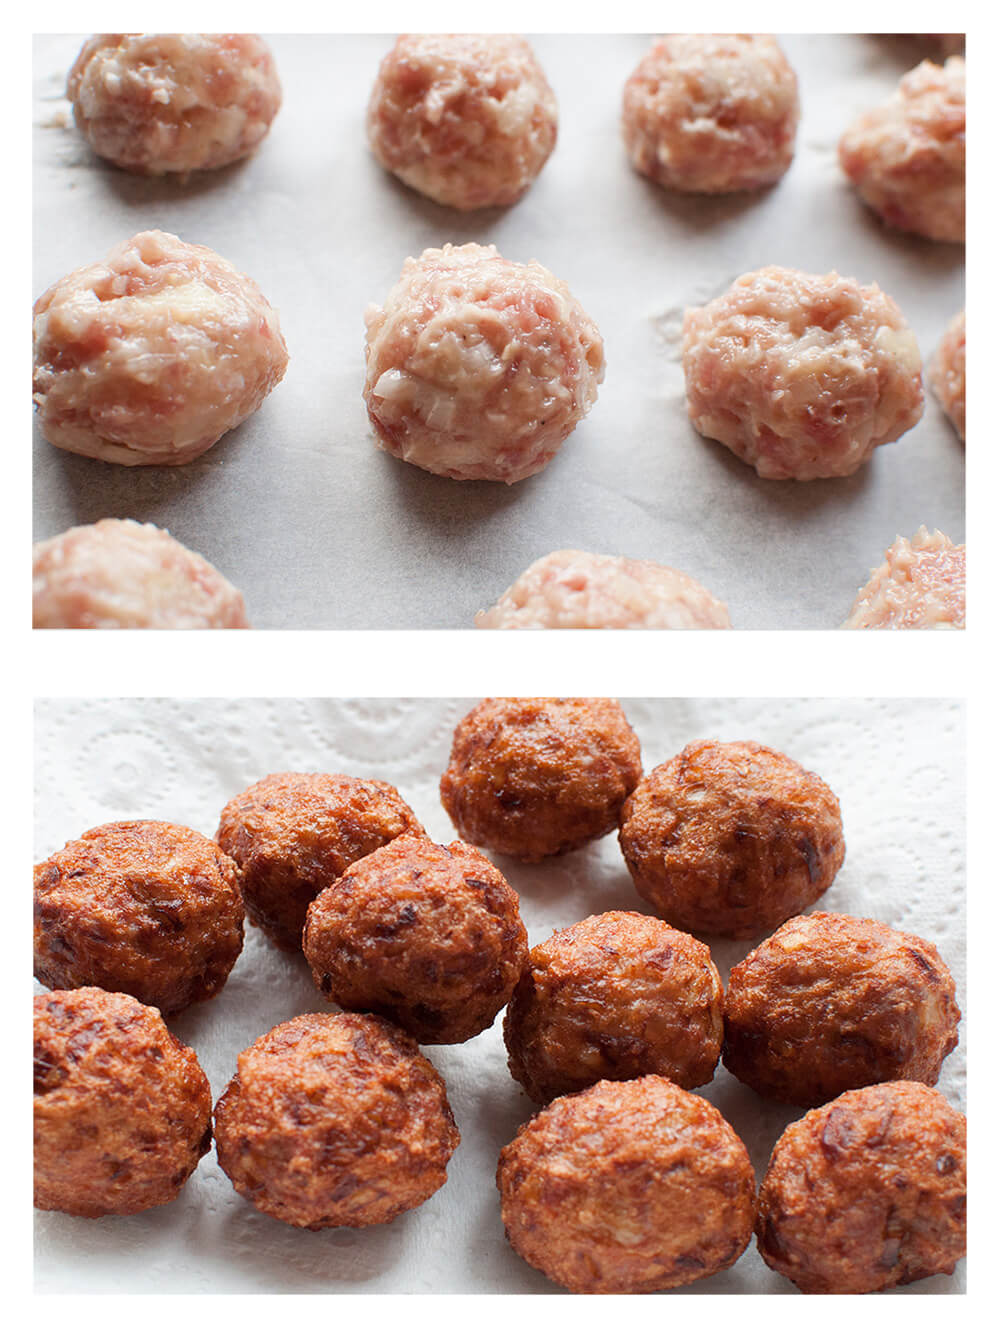 Japanese Pork meatballs are deep fried meatballs coated in flavoursome sauce. By just changing the sauce, you will get quite different meatball dishes – one with sweet and sour sauces, one with weet soy sauce like teriyaki sauce. Both are really tasty.